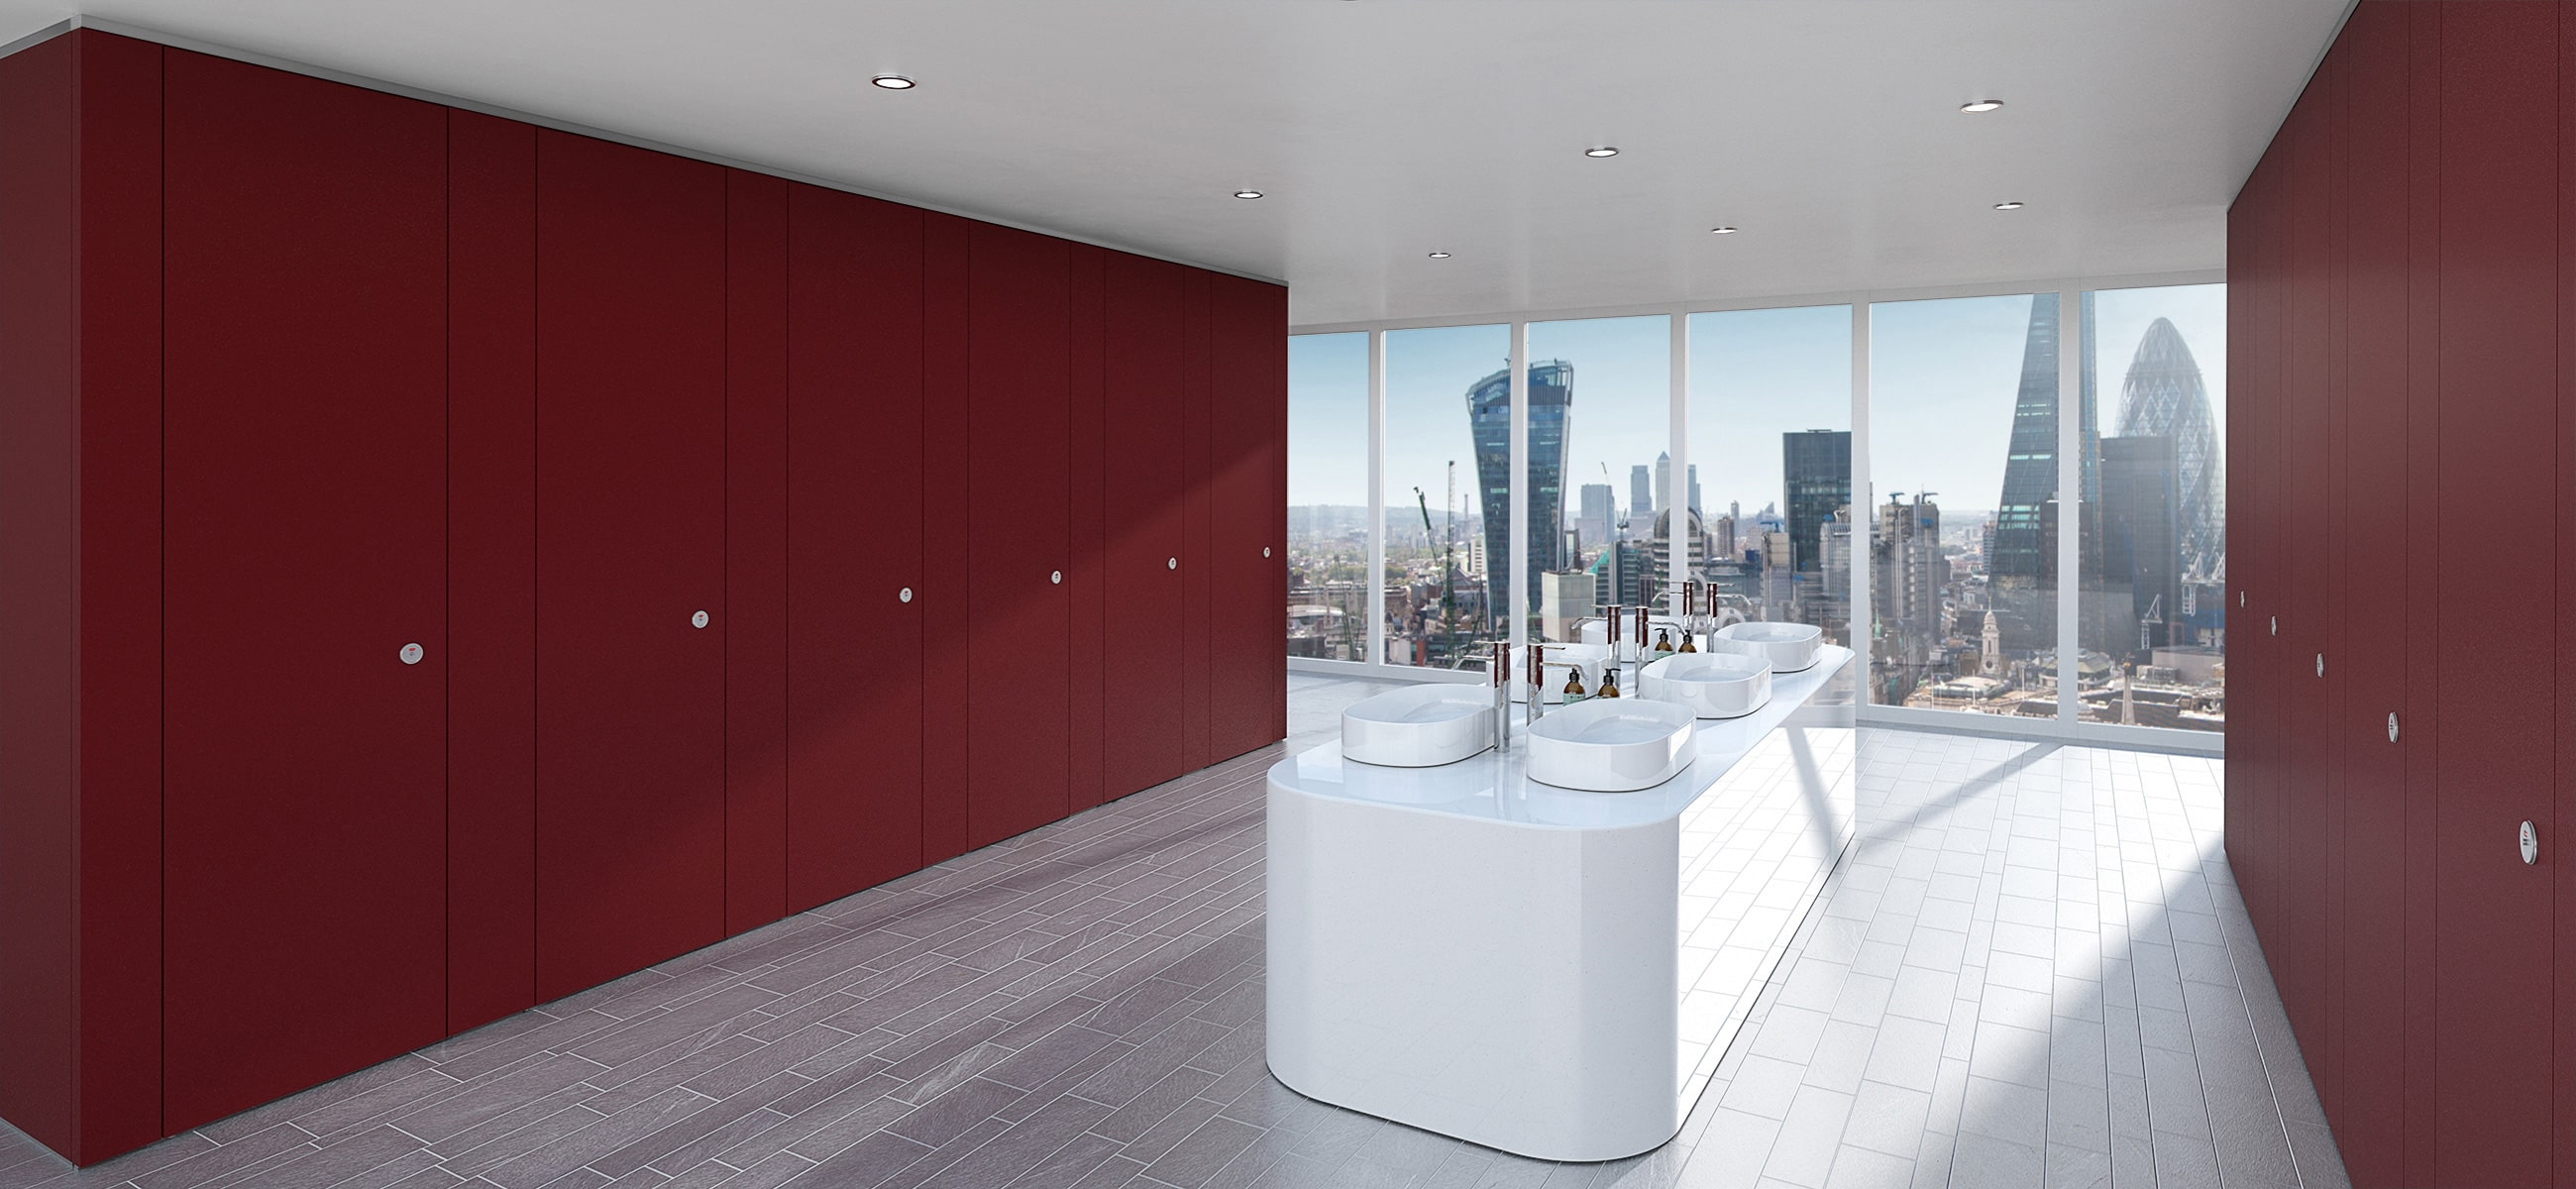 Sylan Commercial Washroom Cubicles in Berry ColourCoat